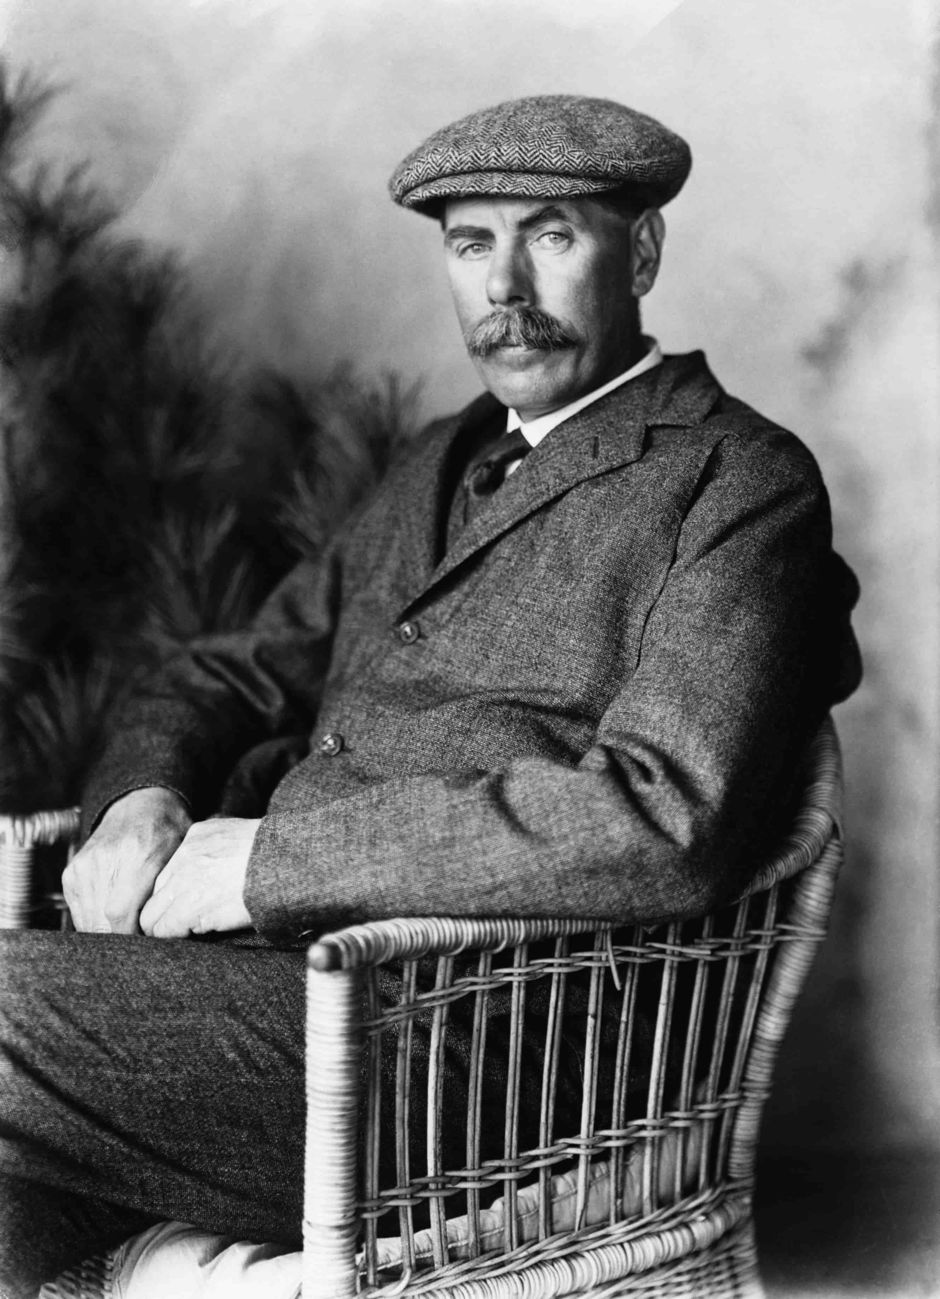 James Braid Golf